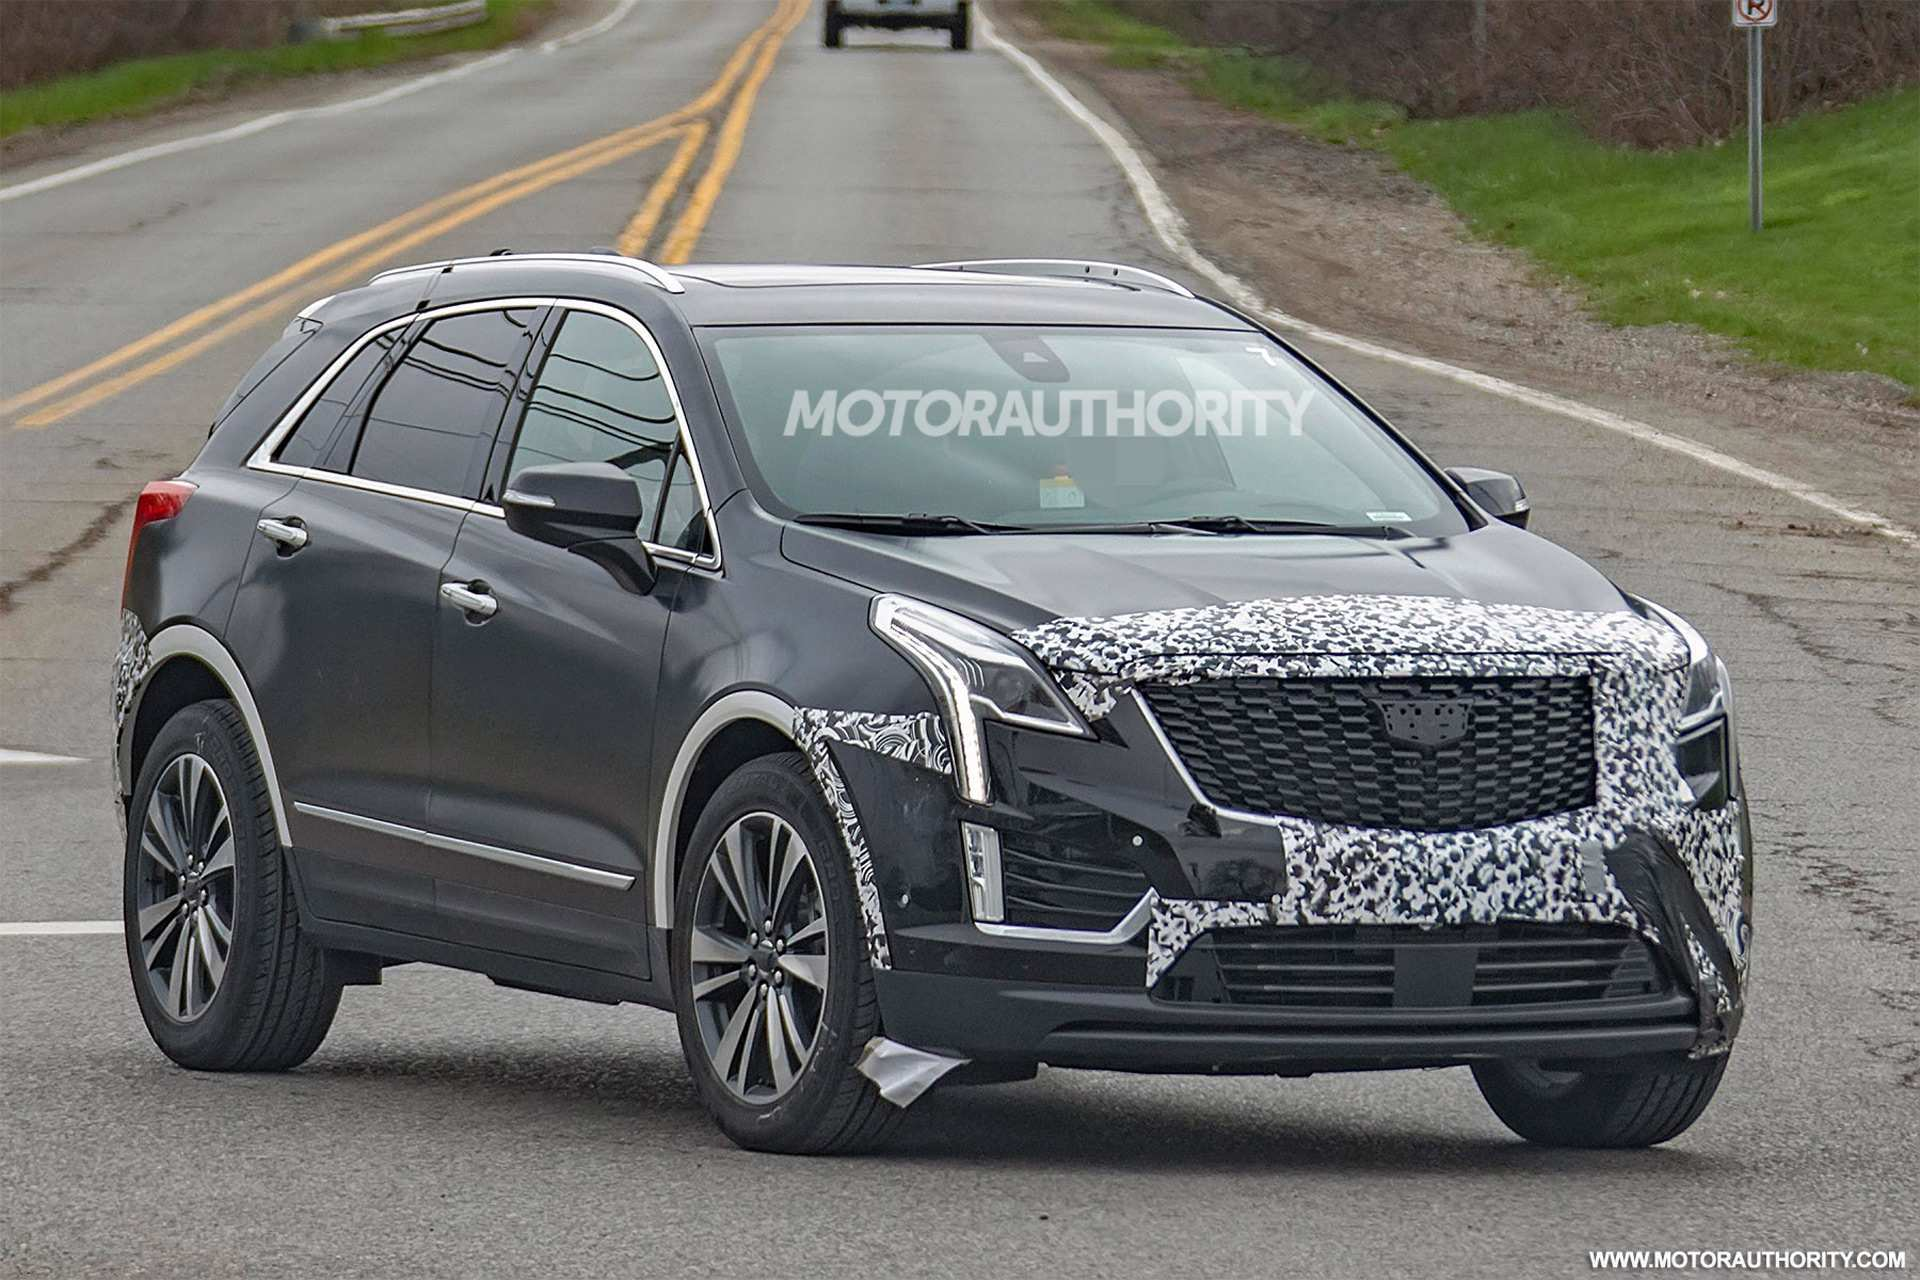 62 New Cadillac Spy Shots Research New with Cadillac Spy Shots